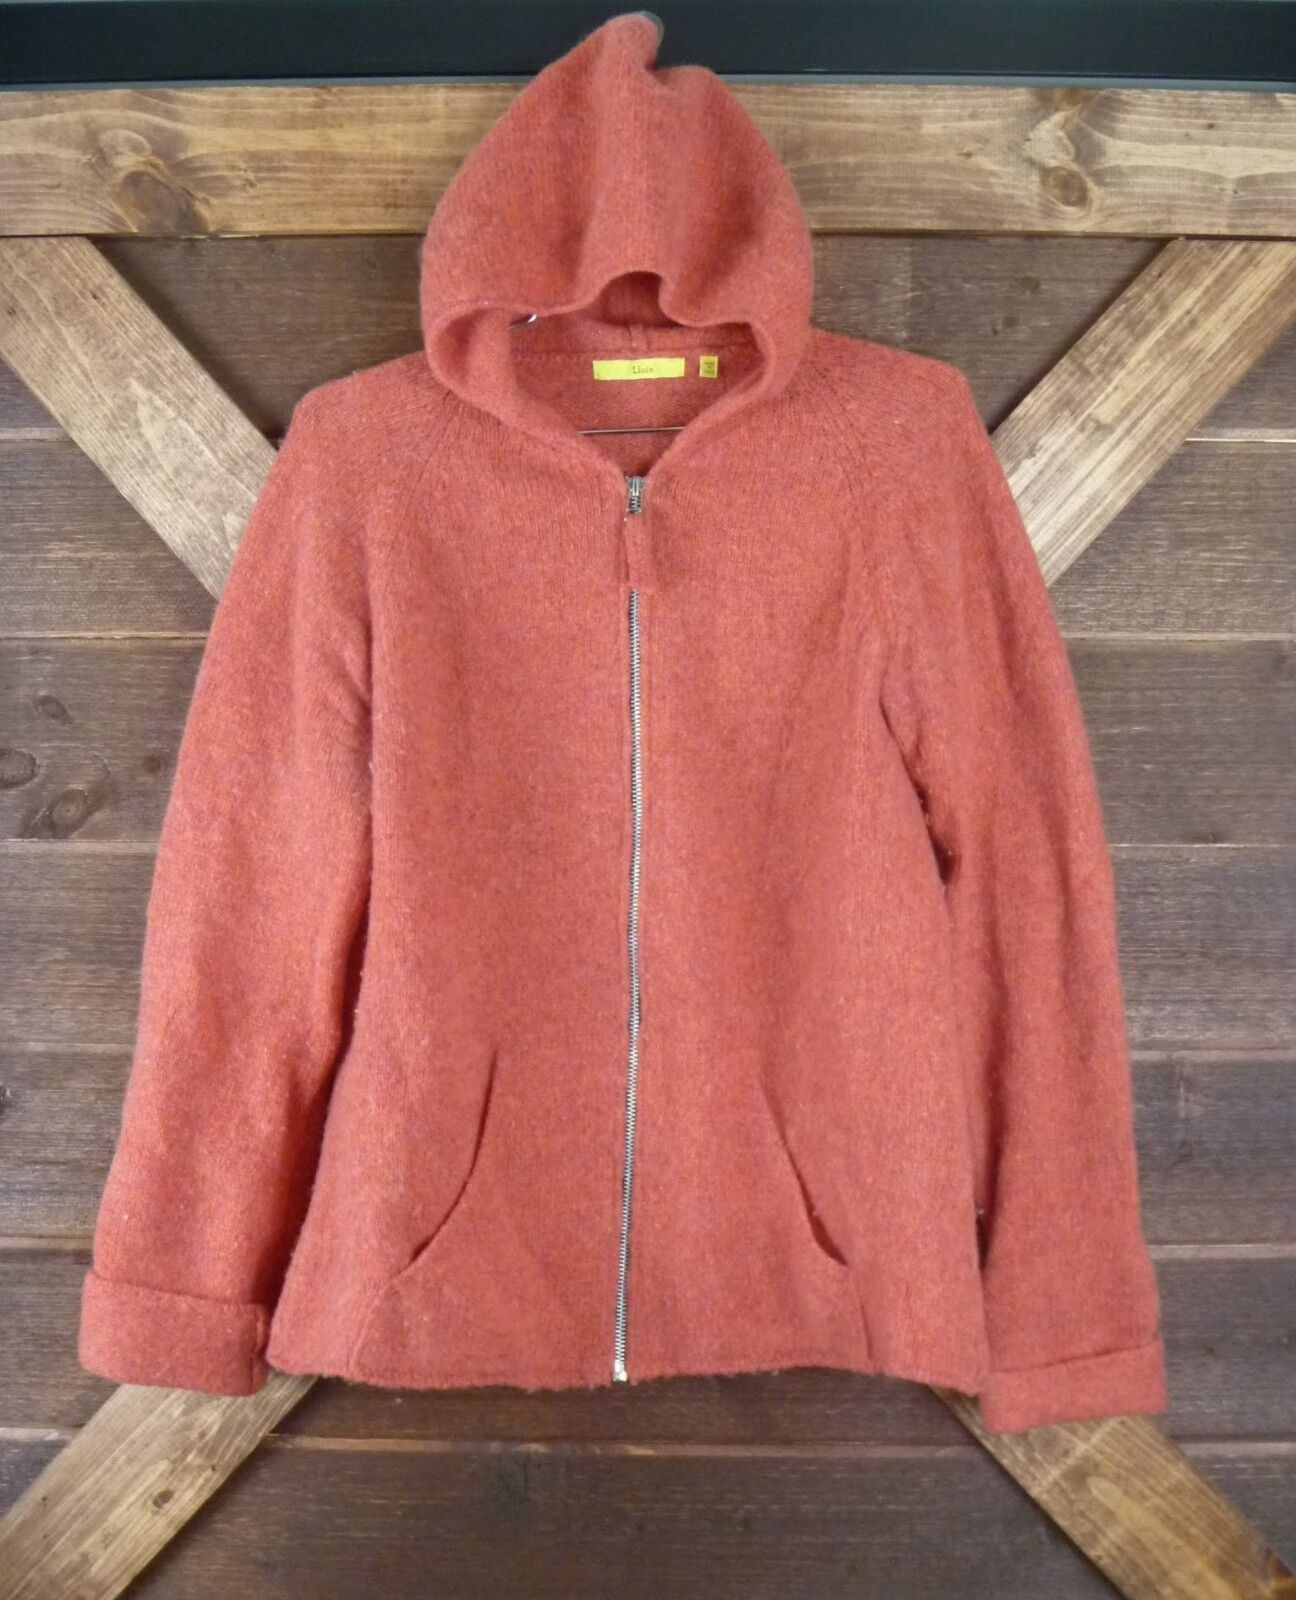 1990s LLUIS WOMENS SIZE LARGE LARGE LARGE HOODED 100% LAMBSWOOL ZIP-UP SWEATER GC YKK RD OR 68840e